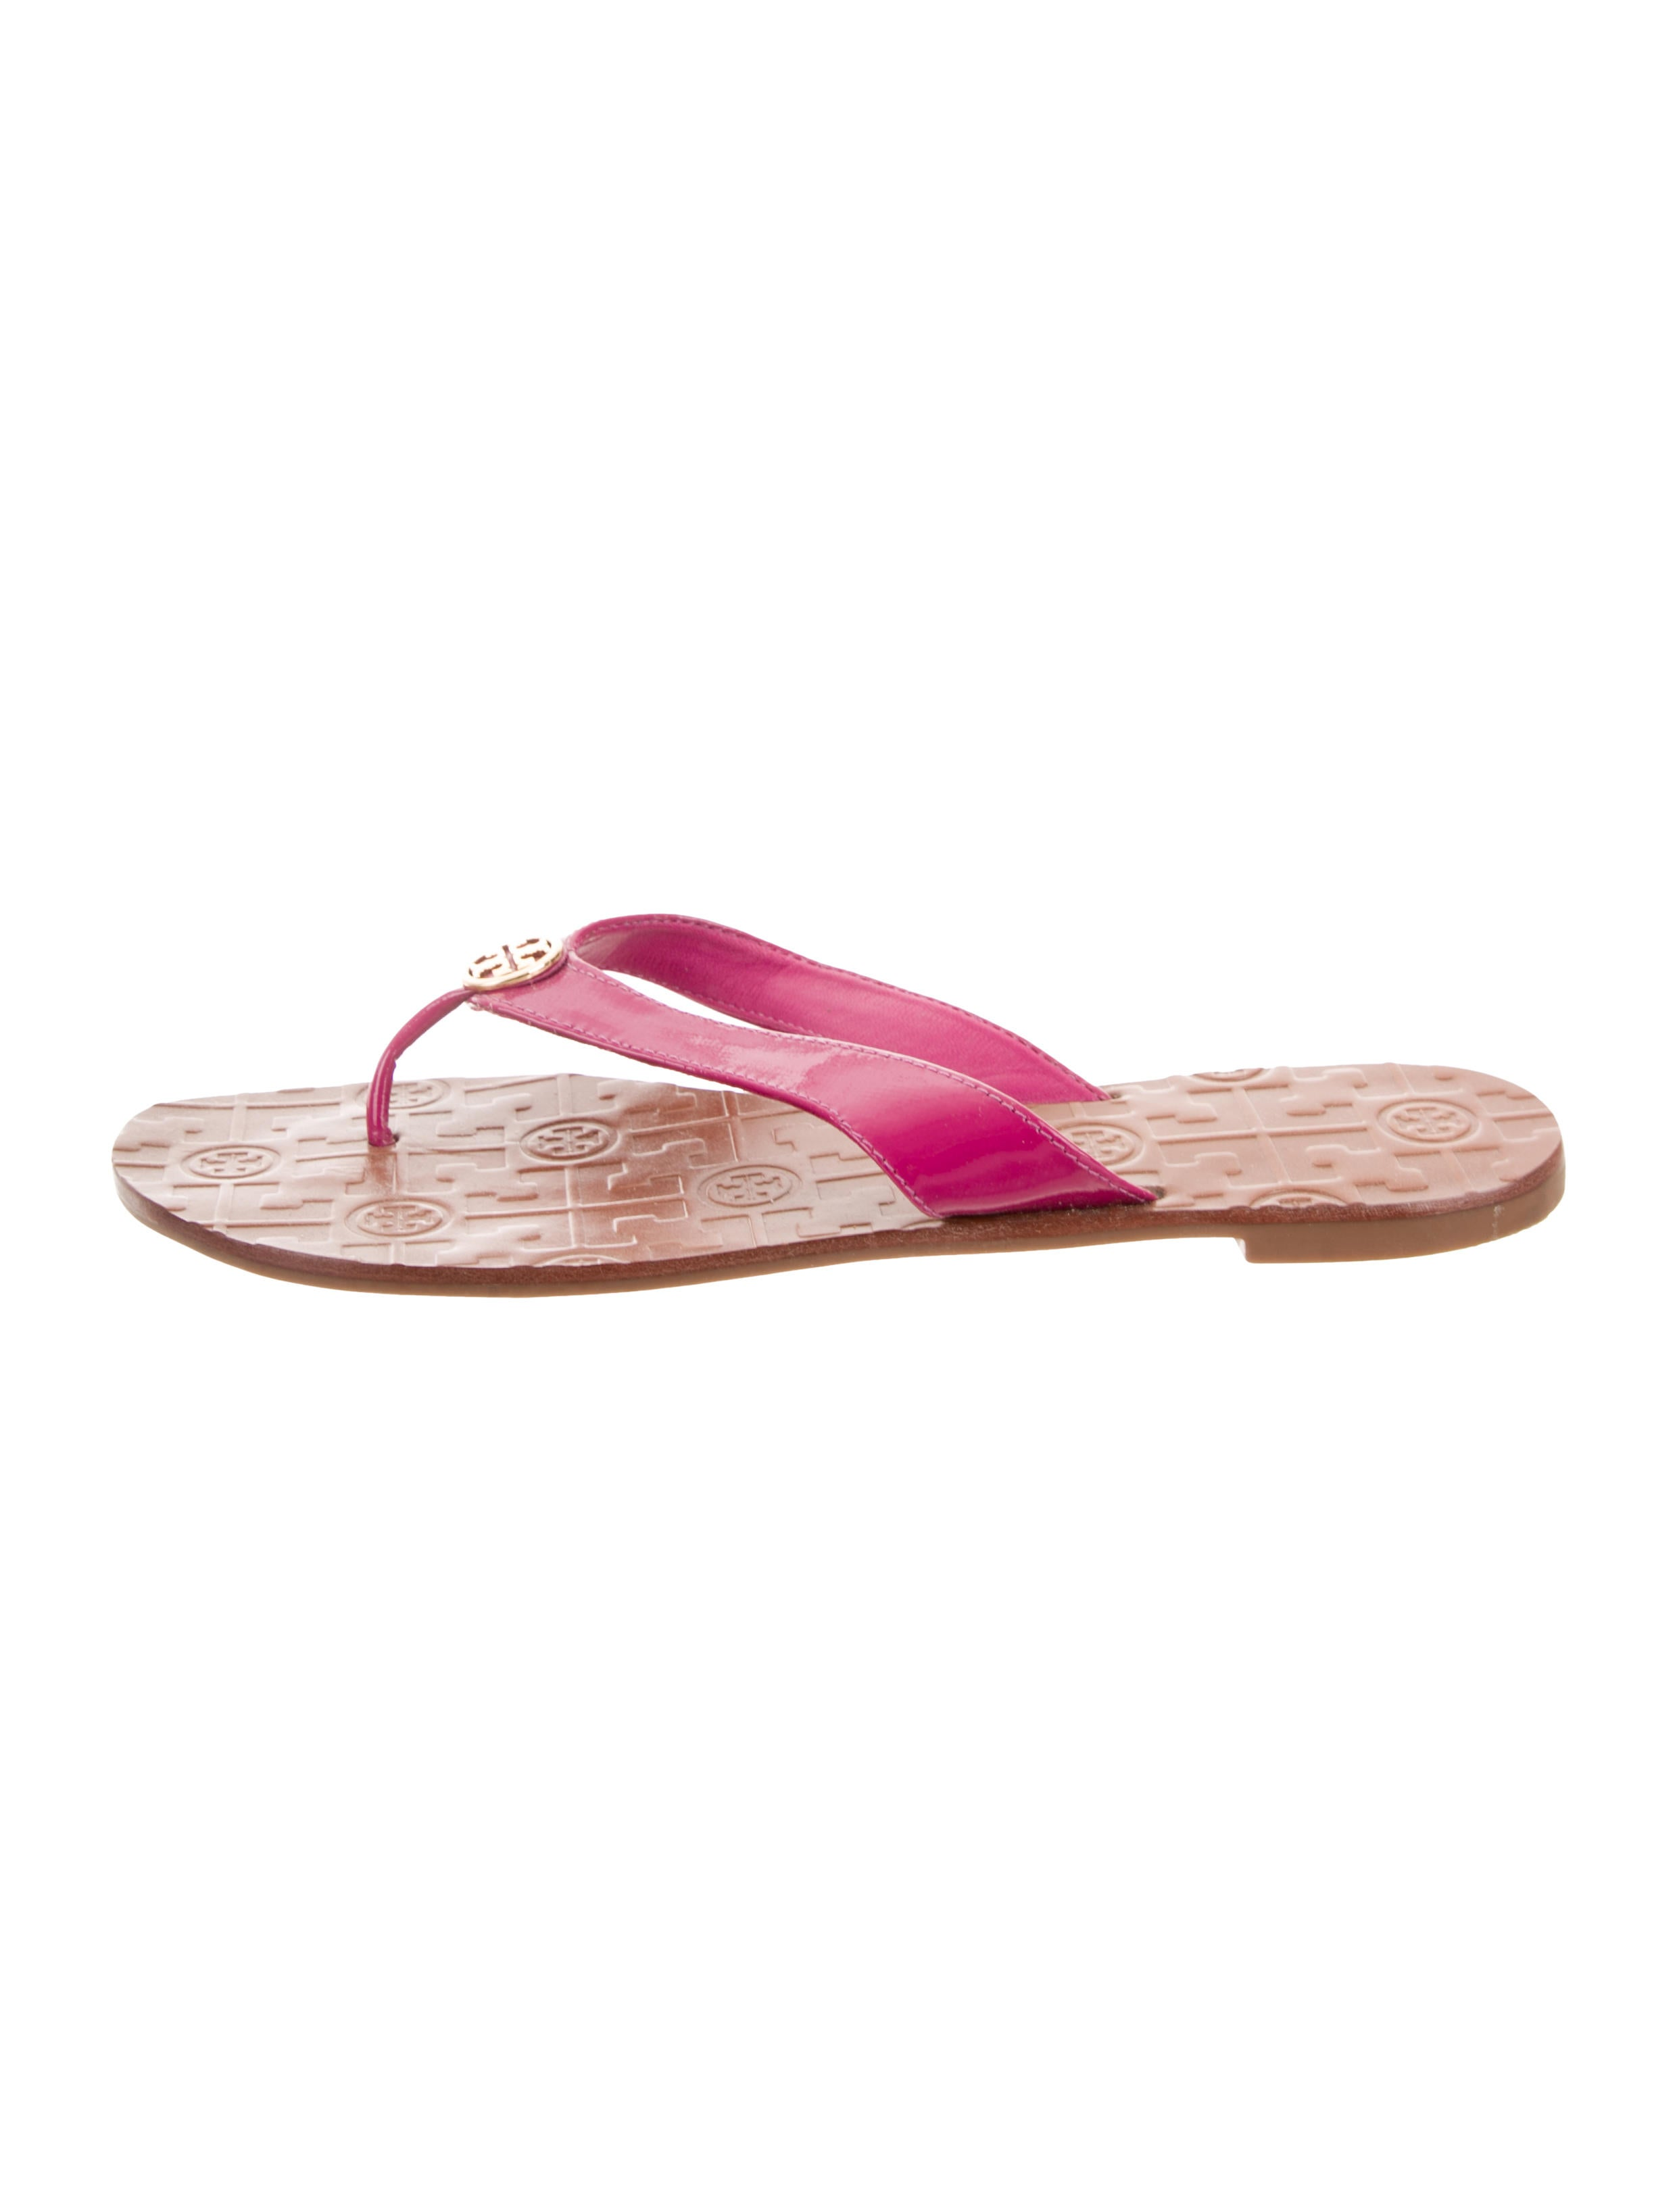 b198af17f5e Tory Burch Leather Thong Sandals - Shoes - WTO157527